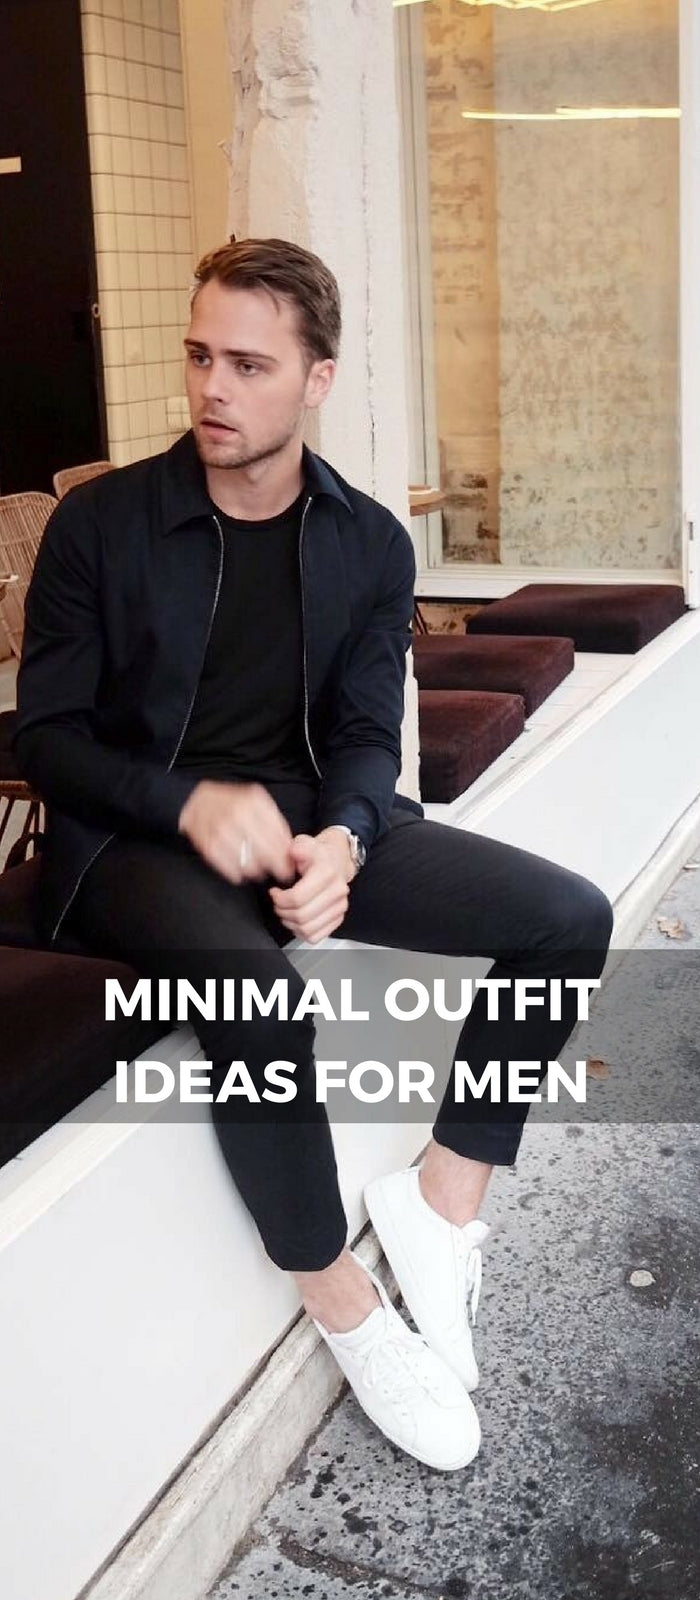 Minimal Outfit Ideas For Men